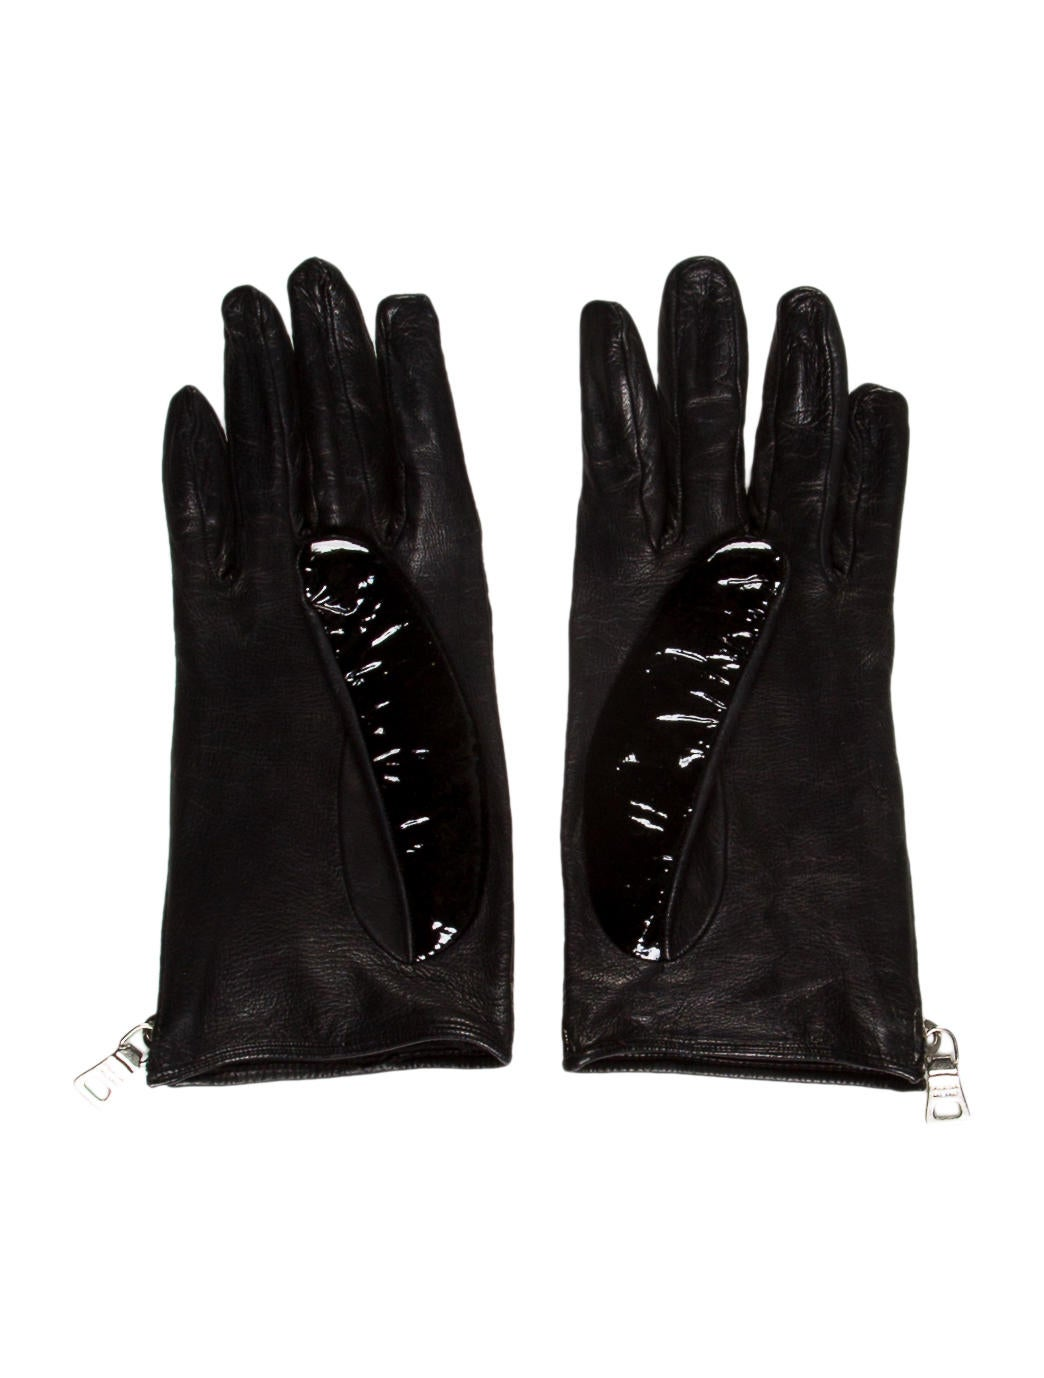 Black patent leather gloves - Patent Leather Gloves